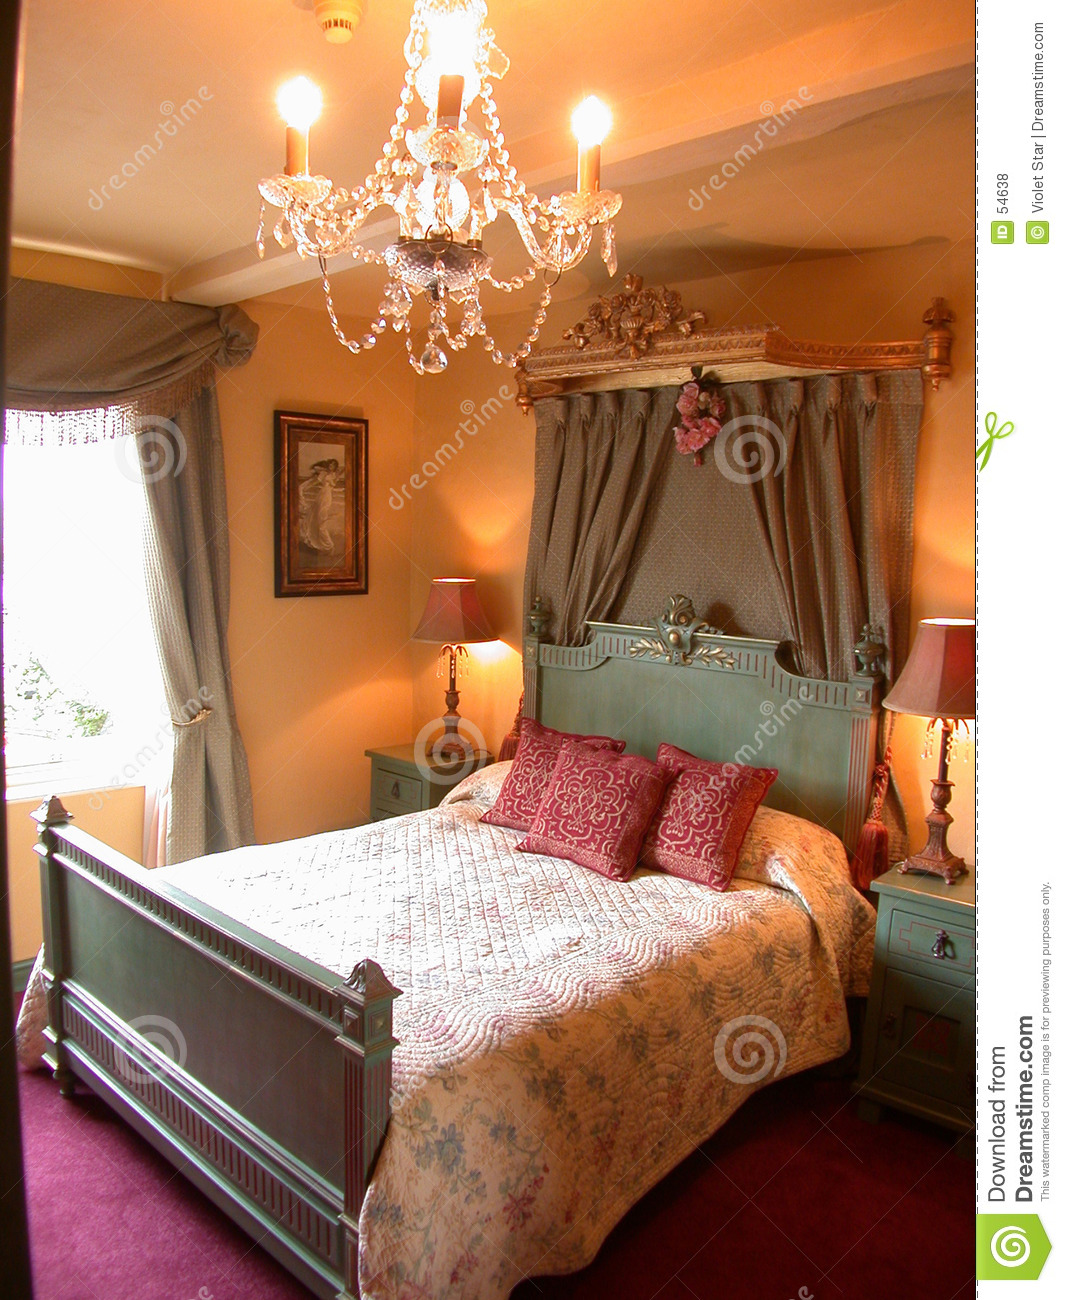 34 194 Romantic Bedroom Photos Free Royalty Free Stock Photos From Dreamstime